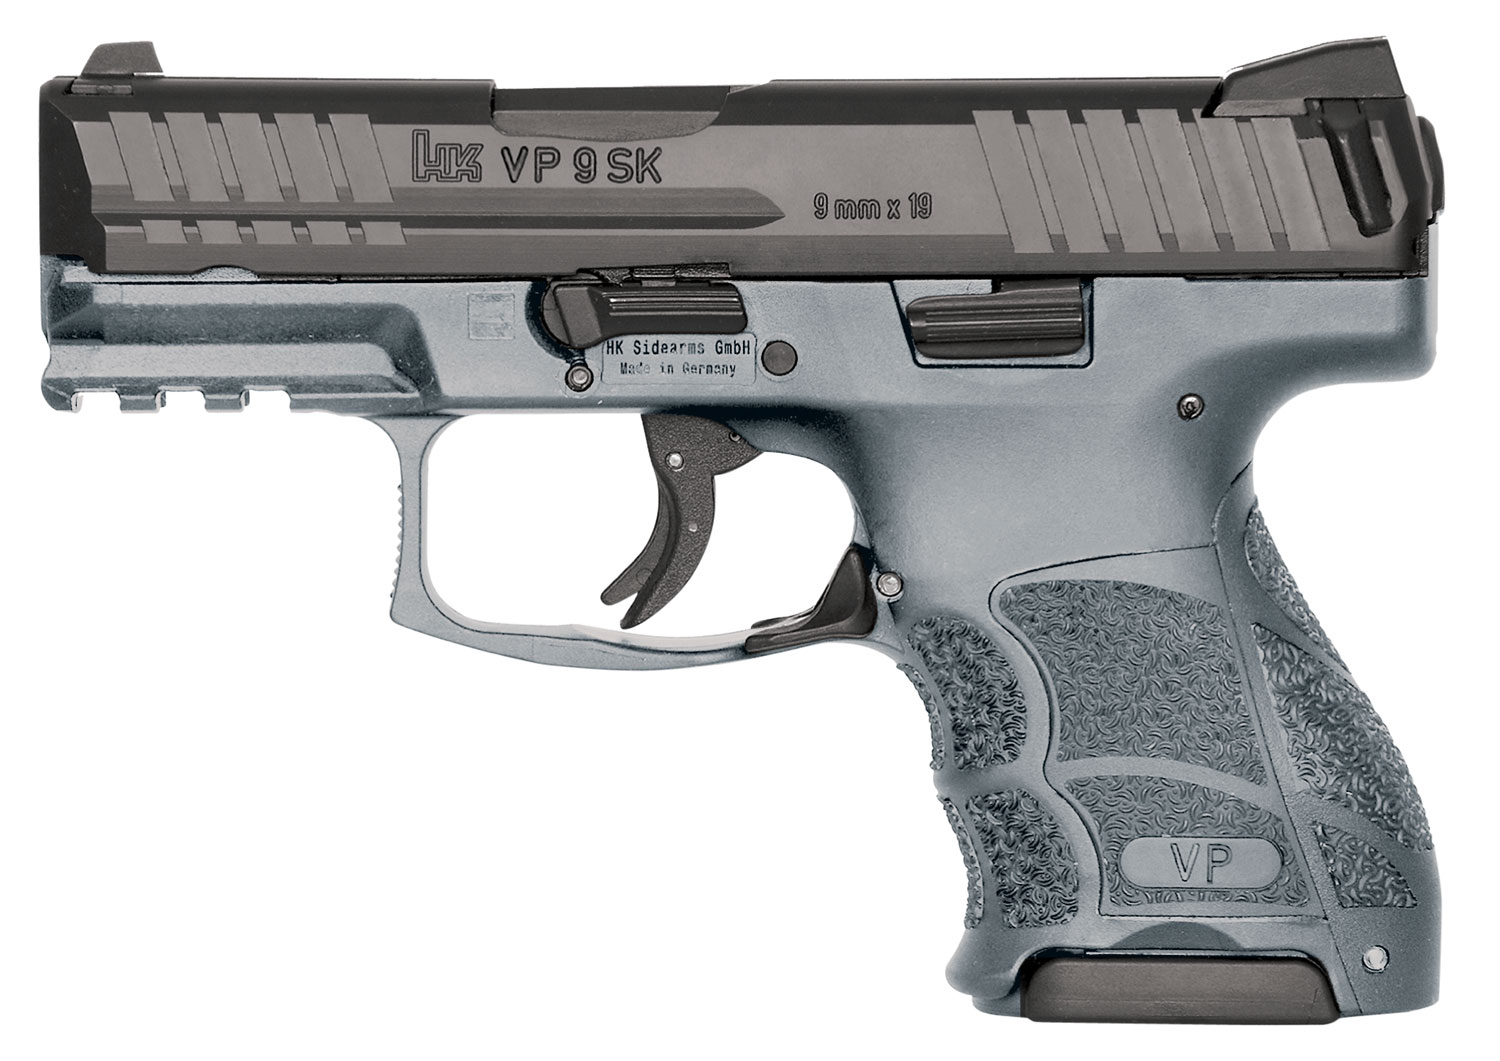 HK 81000099 VP9 SK Double 9mm Luger 3.39